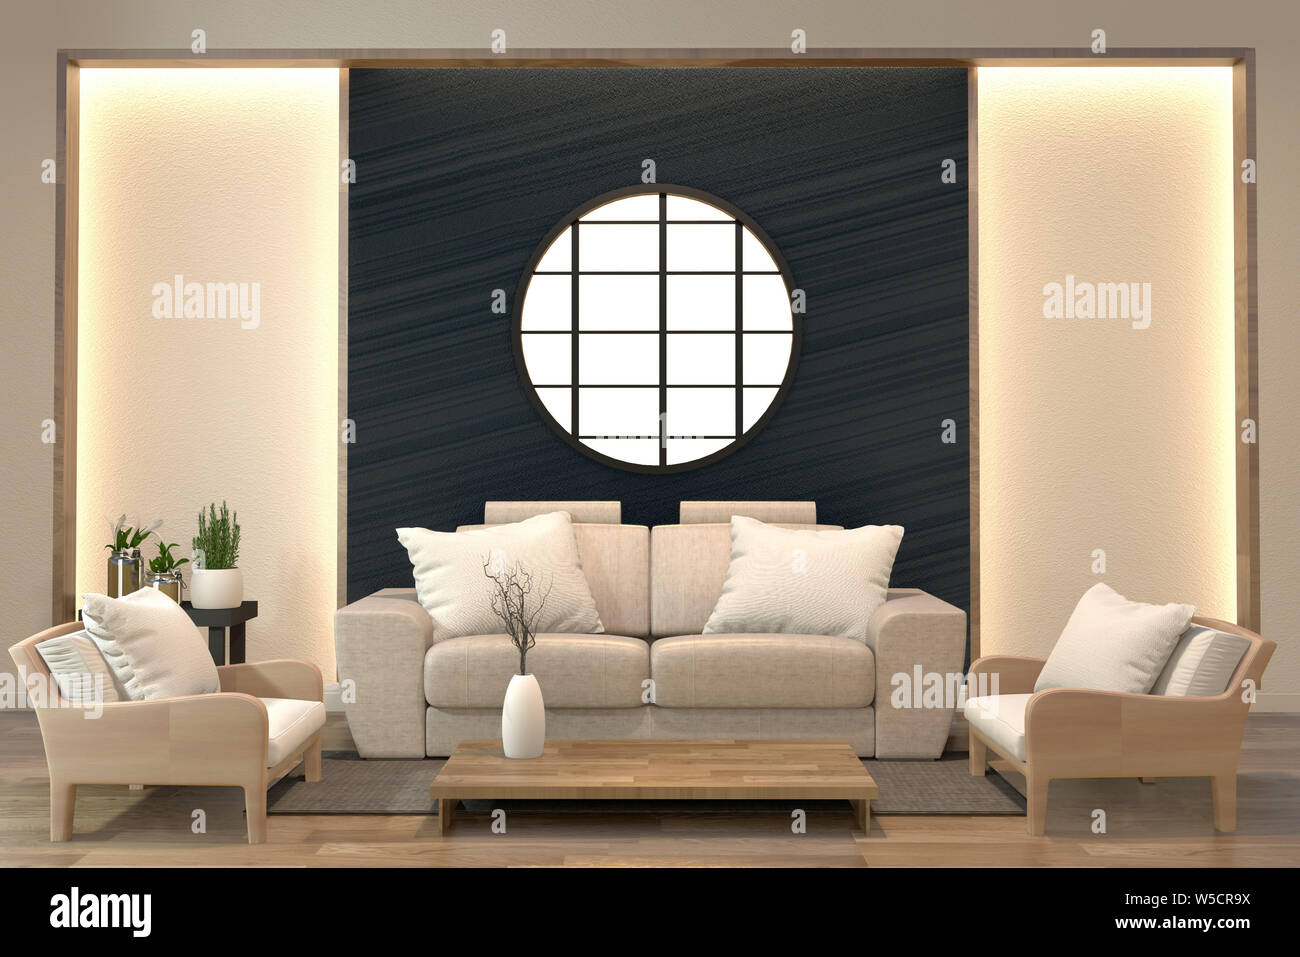 Minimal Interior Design Room Zen Style With Sofa Arm Chair Low Table And Decoration Japan Style Design Hidden Light In Shelf Wall 3d Rendering Stock Photo Alamy